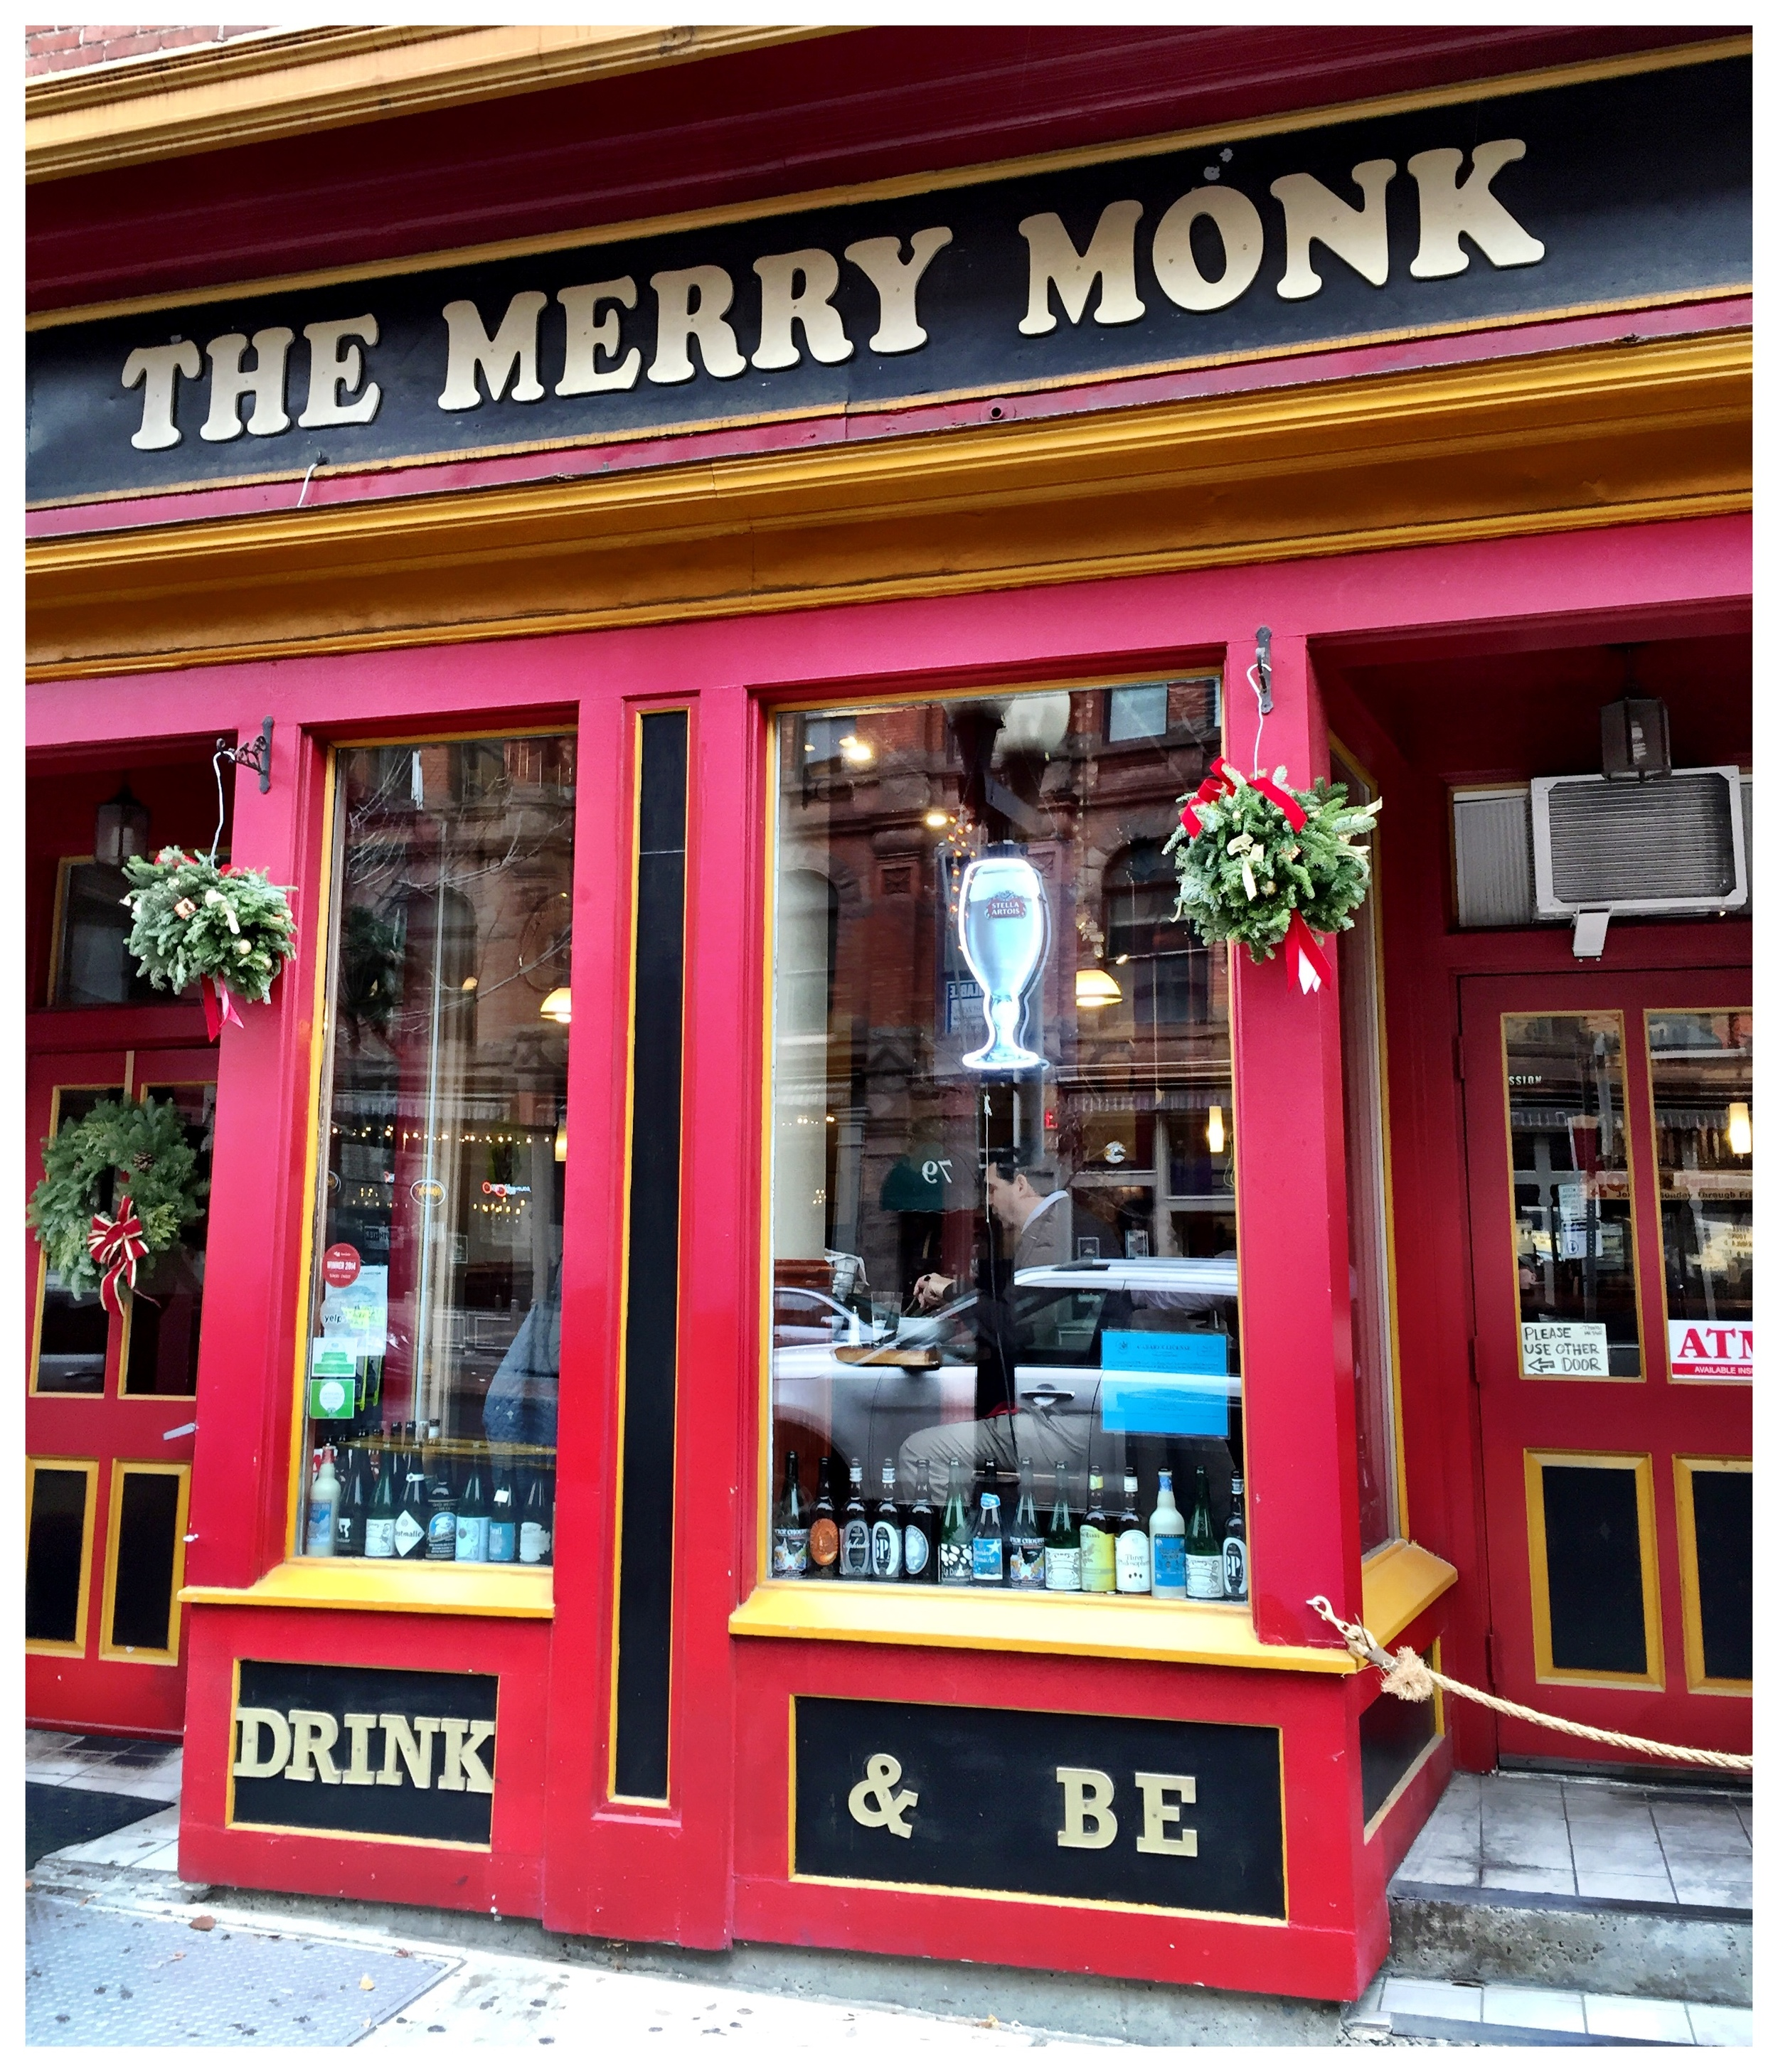 The Merry Monk, Albany NY